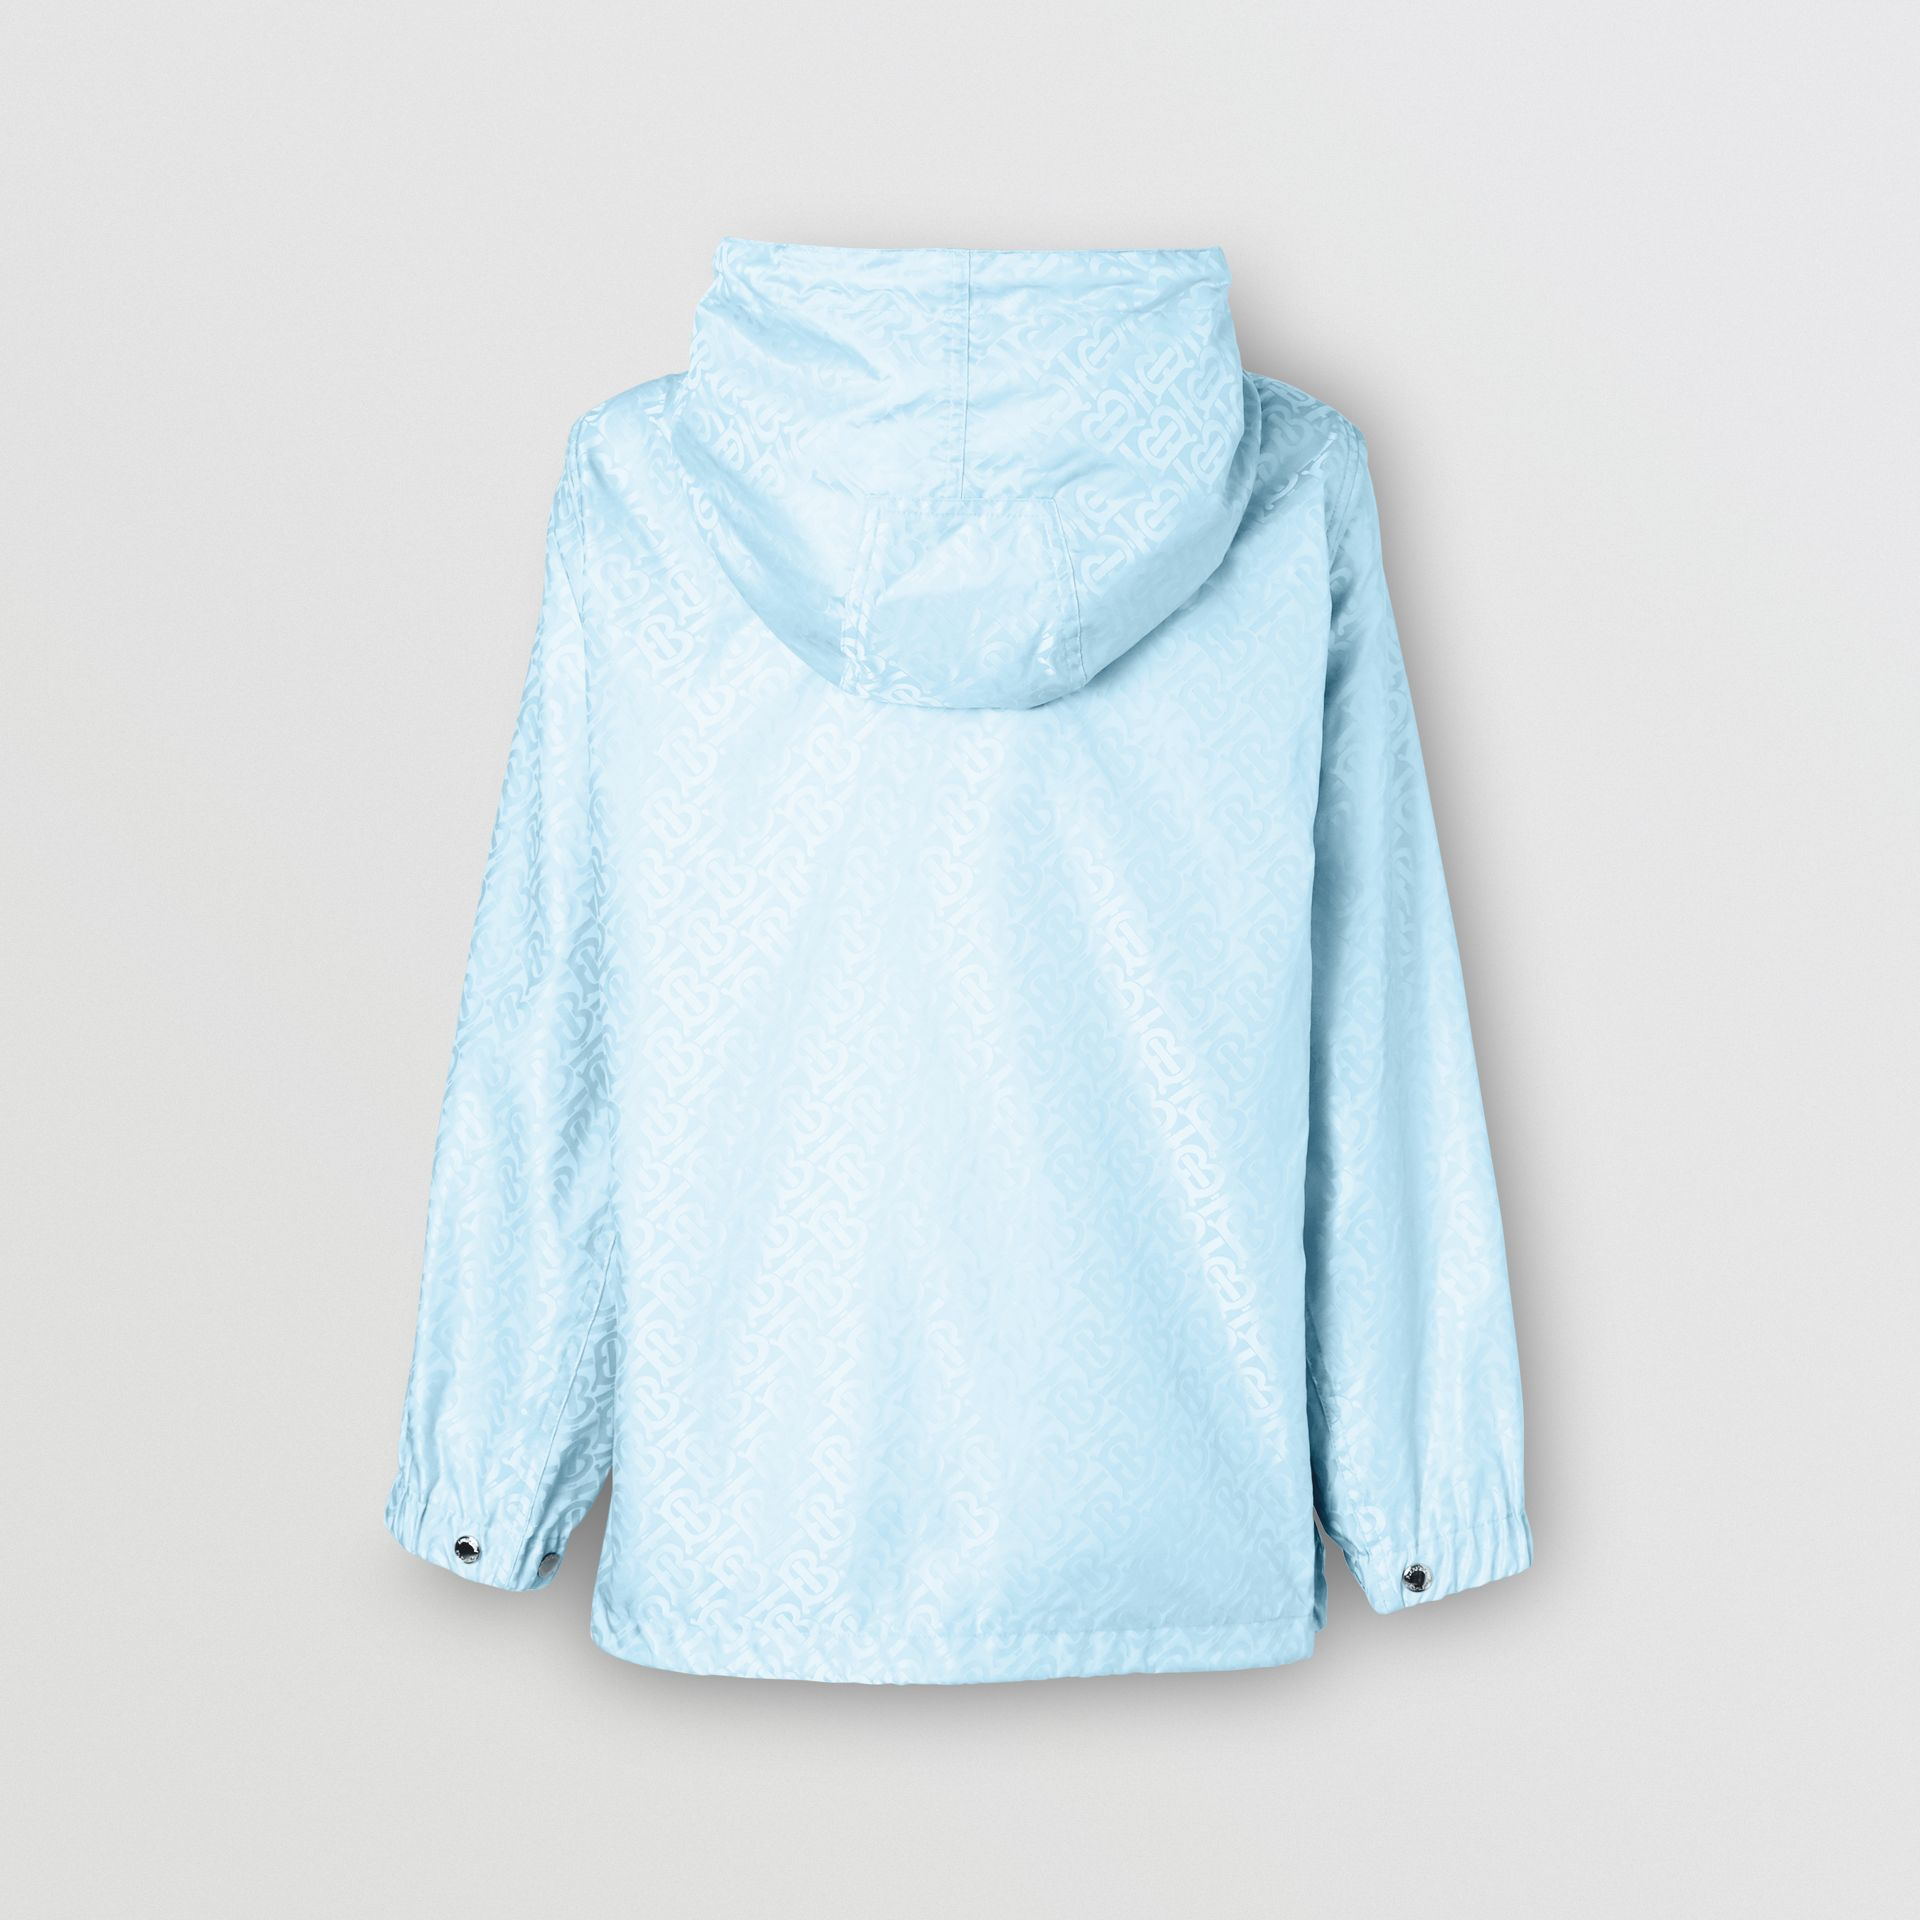 Monogram ECONYL® Jacquard Hooded Jacket in Pale Blue - Women | Burberry - gallery image 2